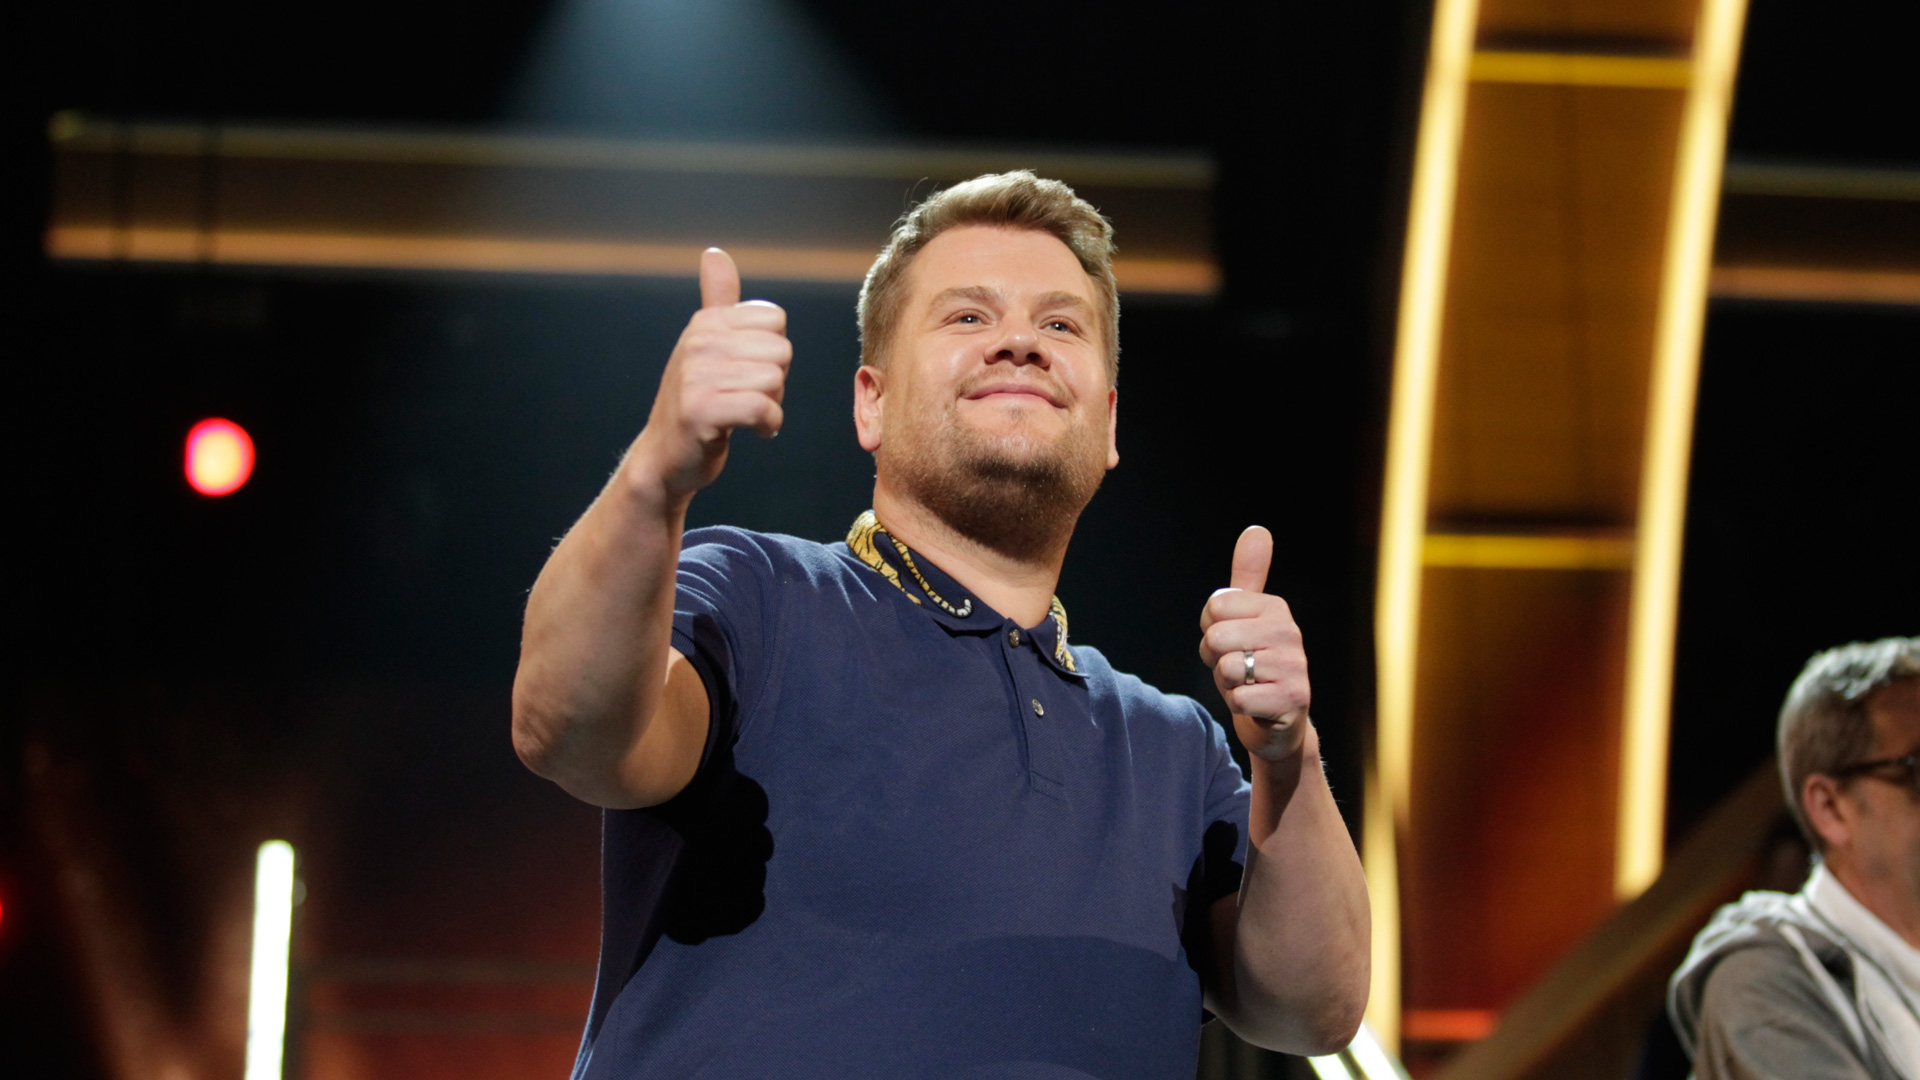 James Corden gives 2017 GRAMMY Awards rehearsals two thumbs up.